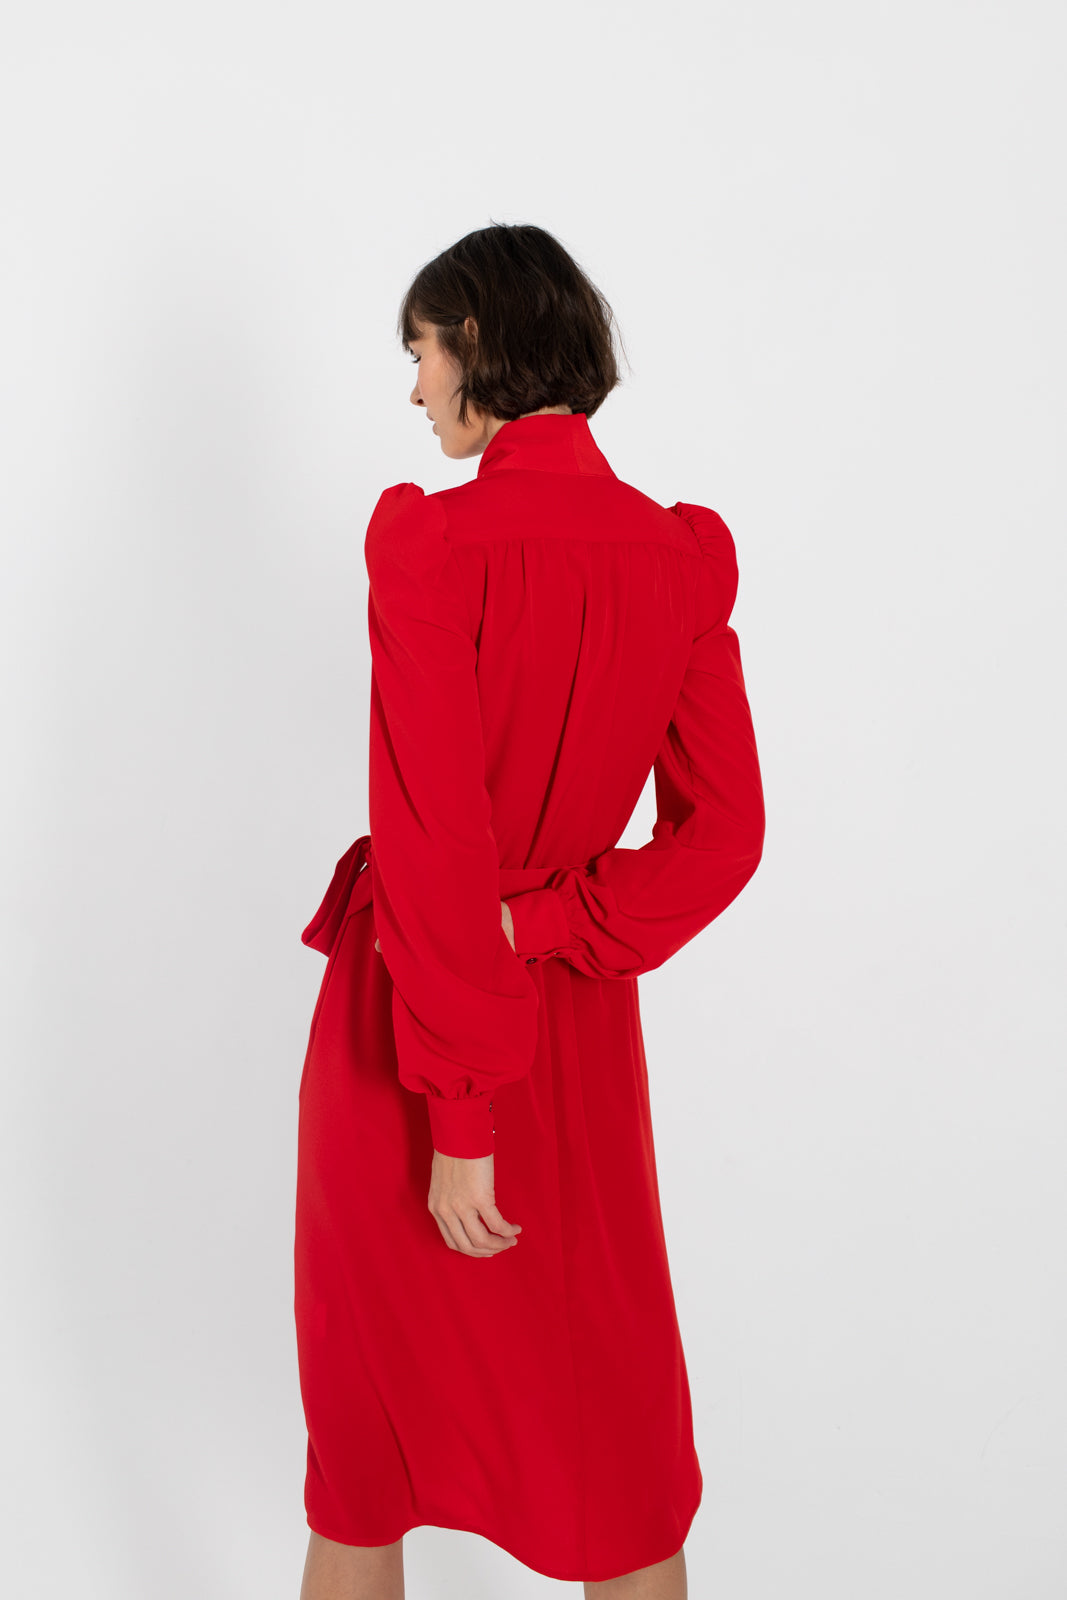 MADEMOISELLE-Scarlet-red-flared-dress-le-slap-occasion-wear-alternative-silk-clothing.jpg